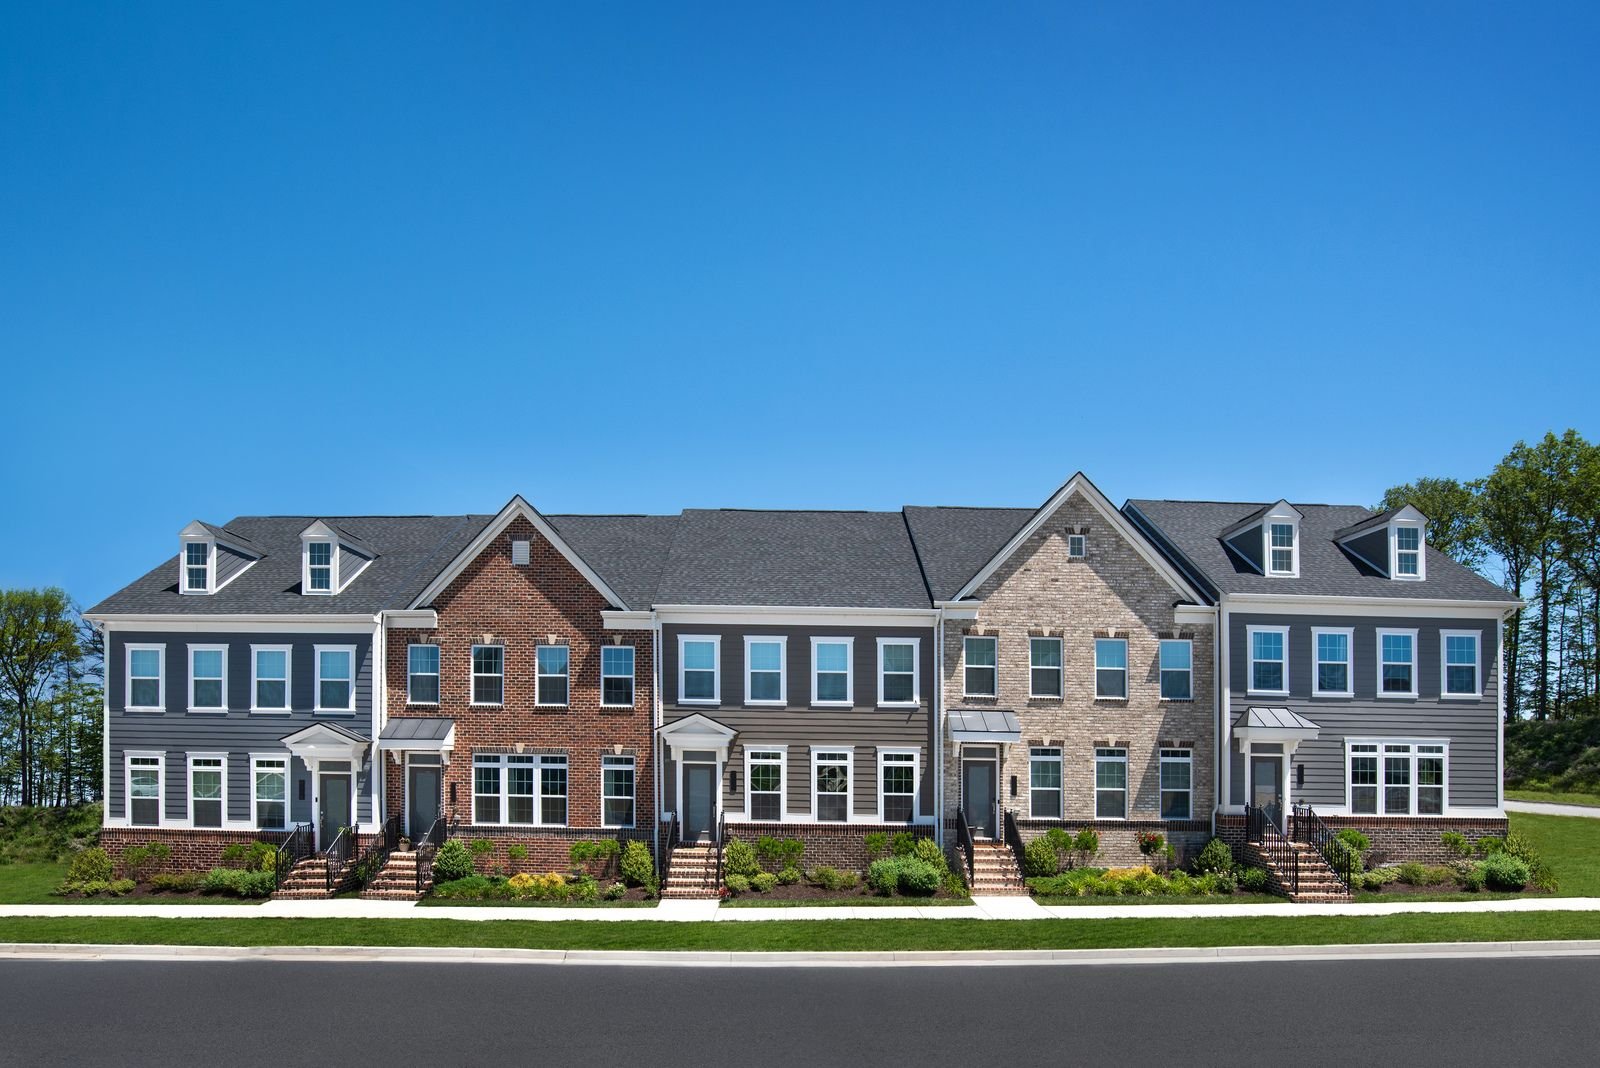 BALTIMORE COUNTY'S MOST LUXURIOUS TOWNHOMES:Our final townhome at Greenleigh is now released and ready for December move-in! Kindly call(202) 931-5230to hear about this limited opportunity for a luxury home in Baltimore.